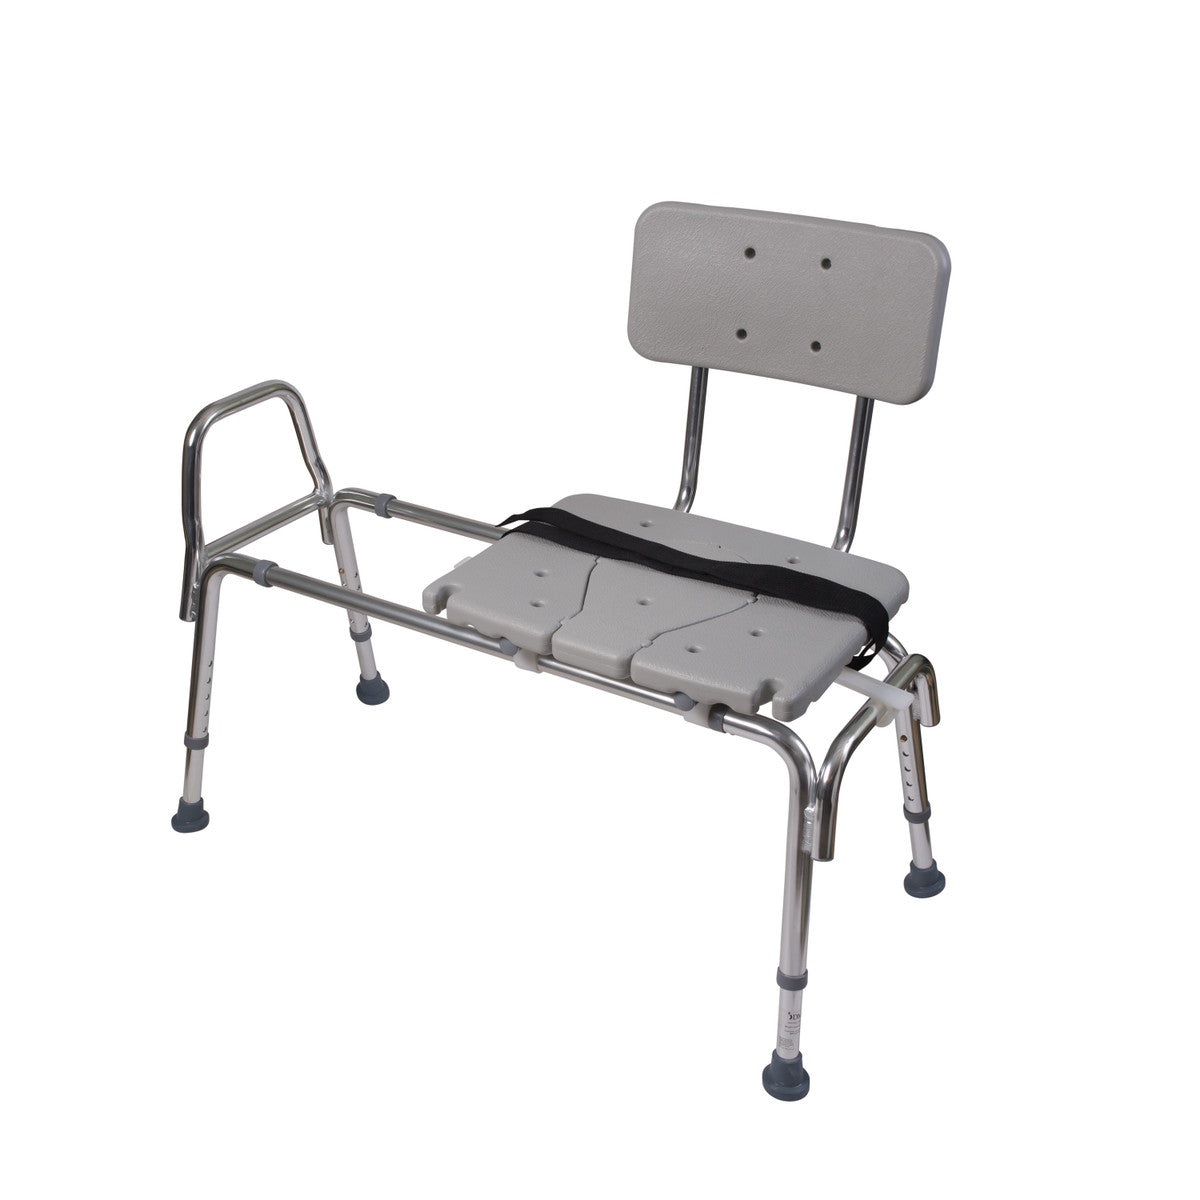 Sliding Transfer Bench Shower Chair at Meridian Medical Supply